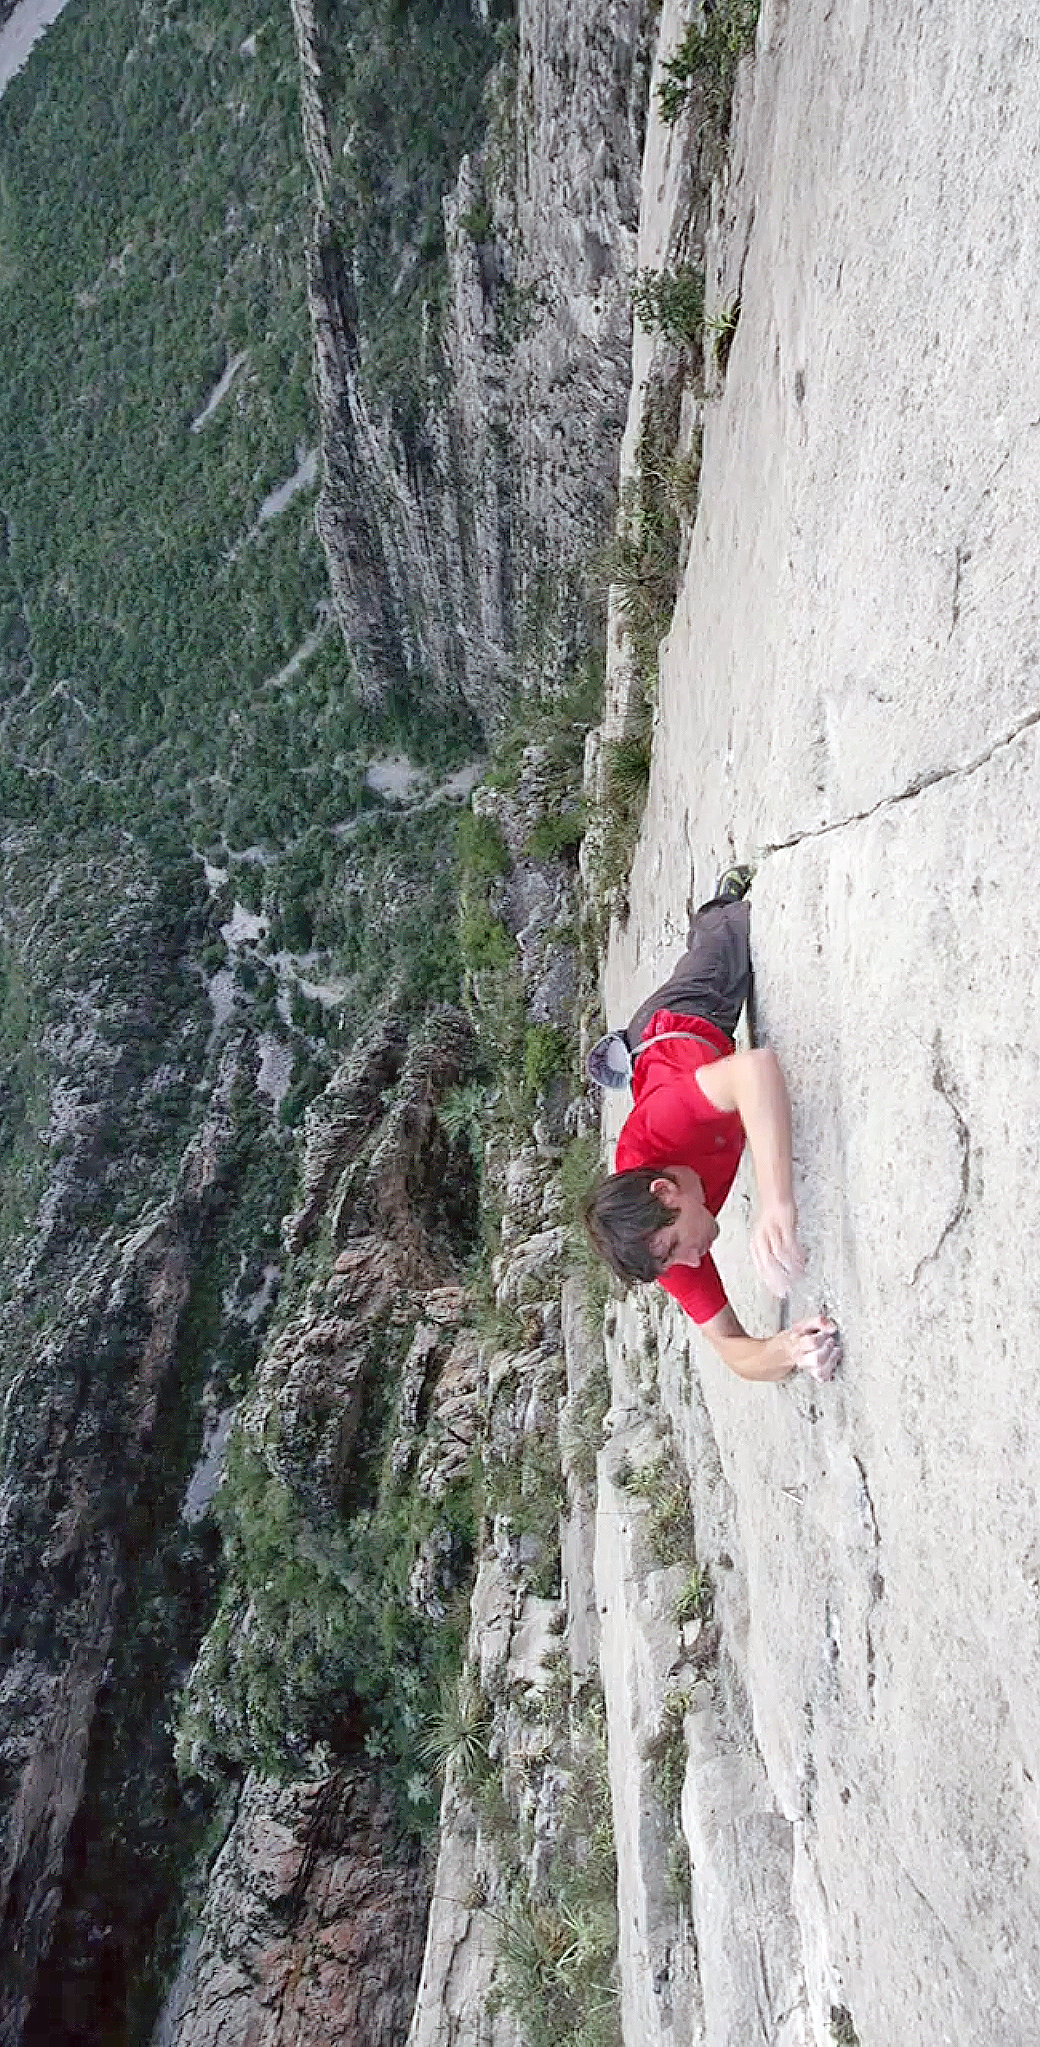 Alex Honnold And World' Free Solo Of 1500-foot Big Wall Community